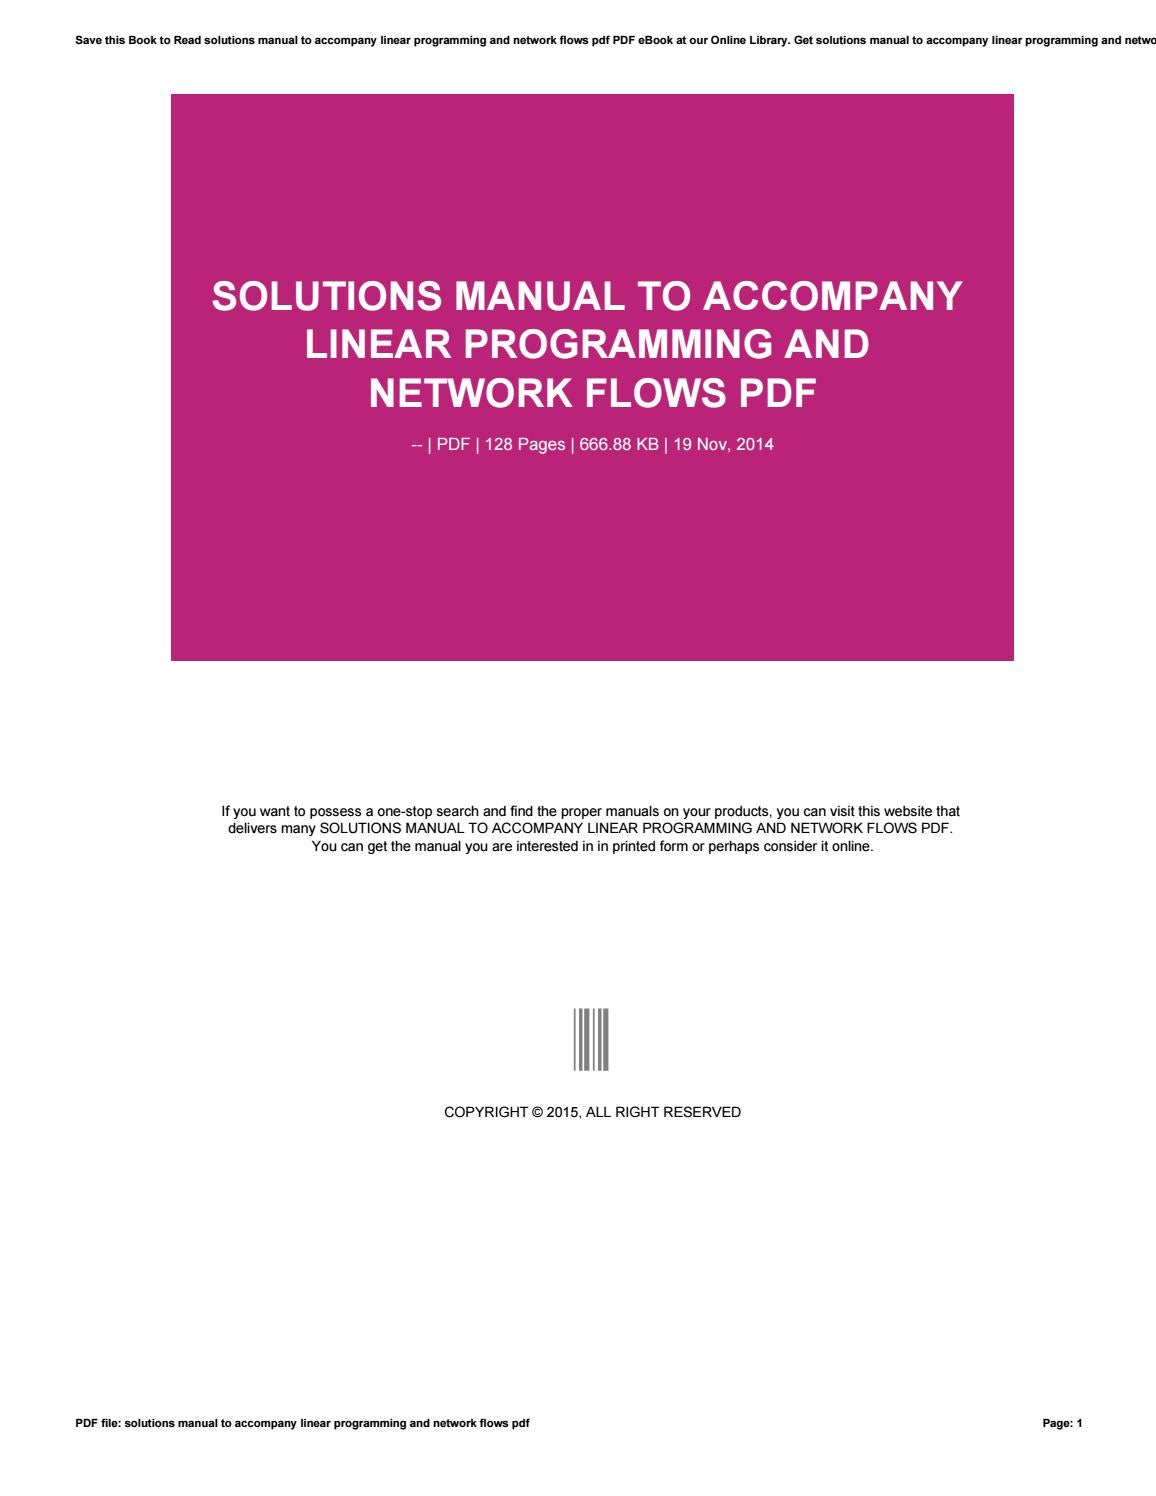 Solutions manual to accompany linear programming and network flows pdf by  freealtgen40 - issuu